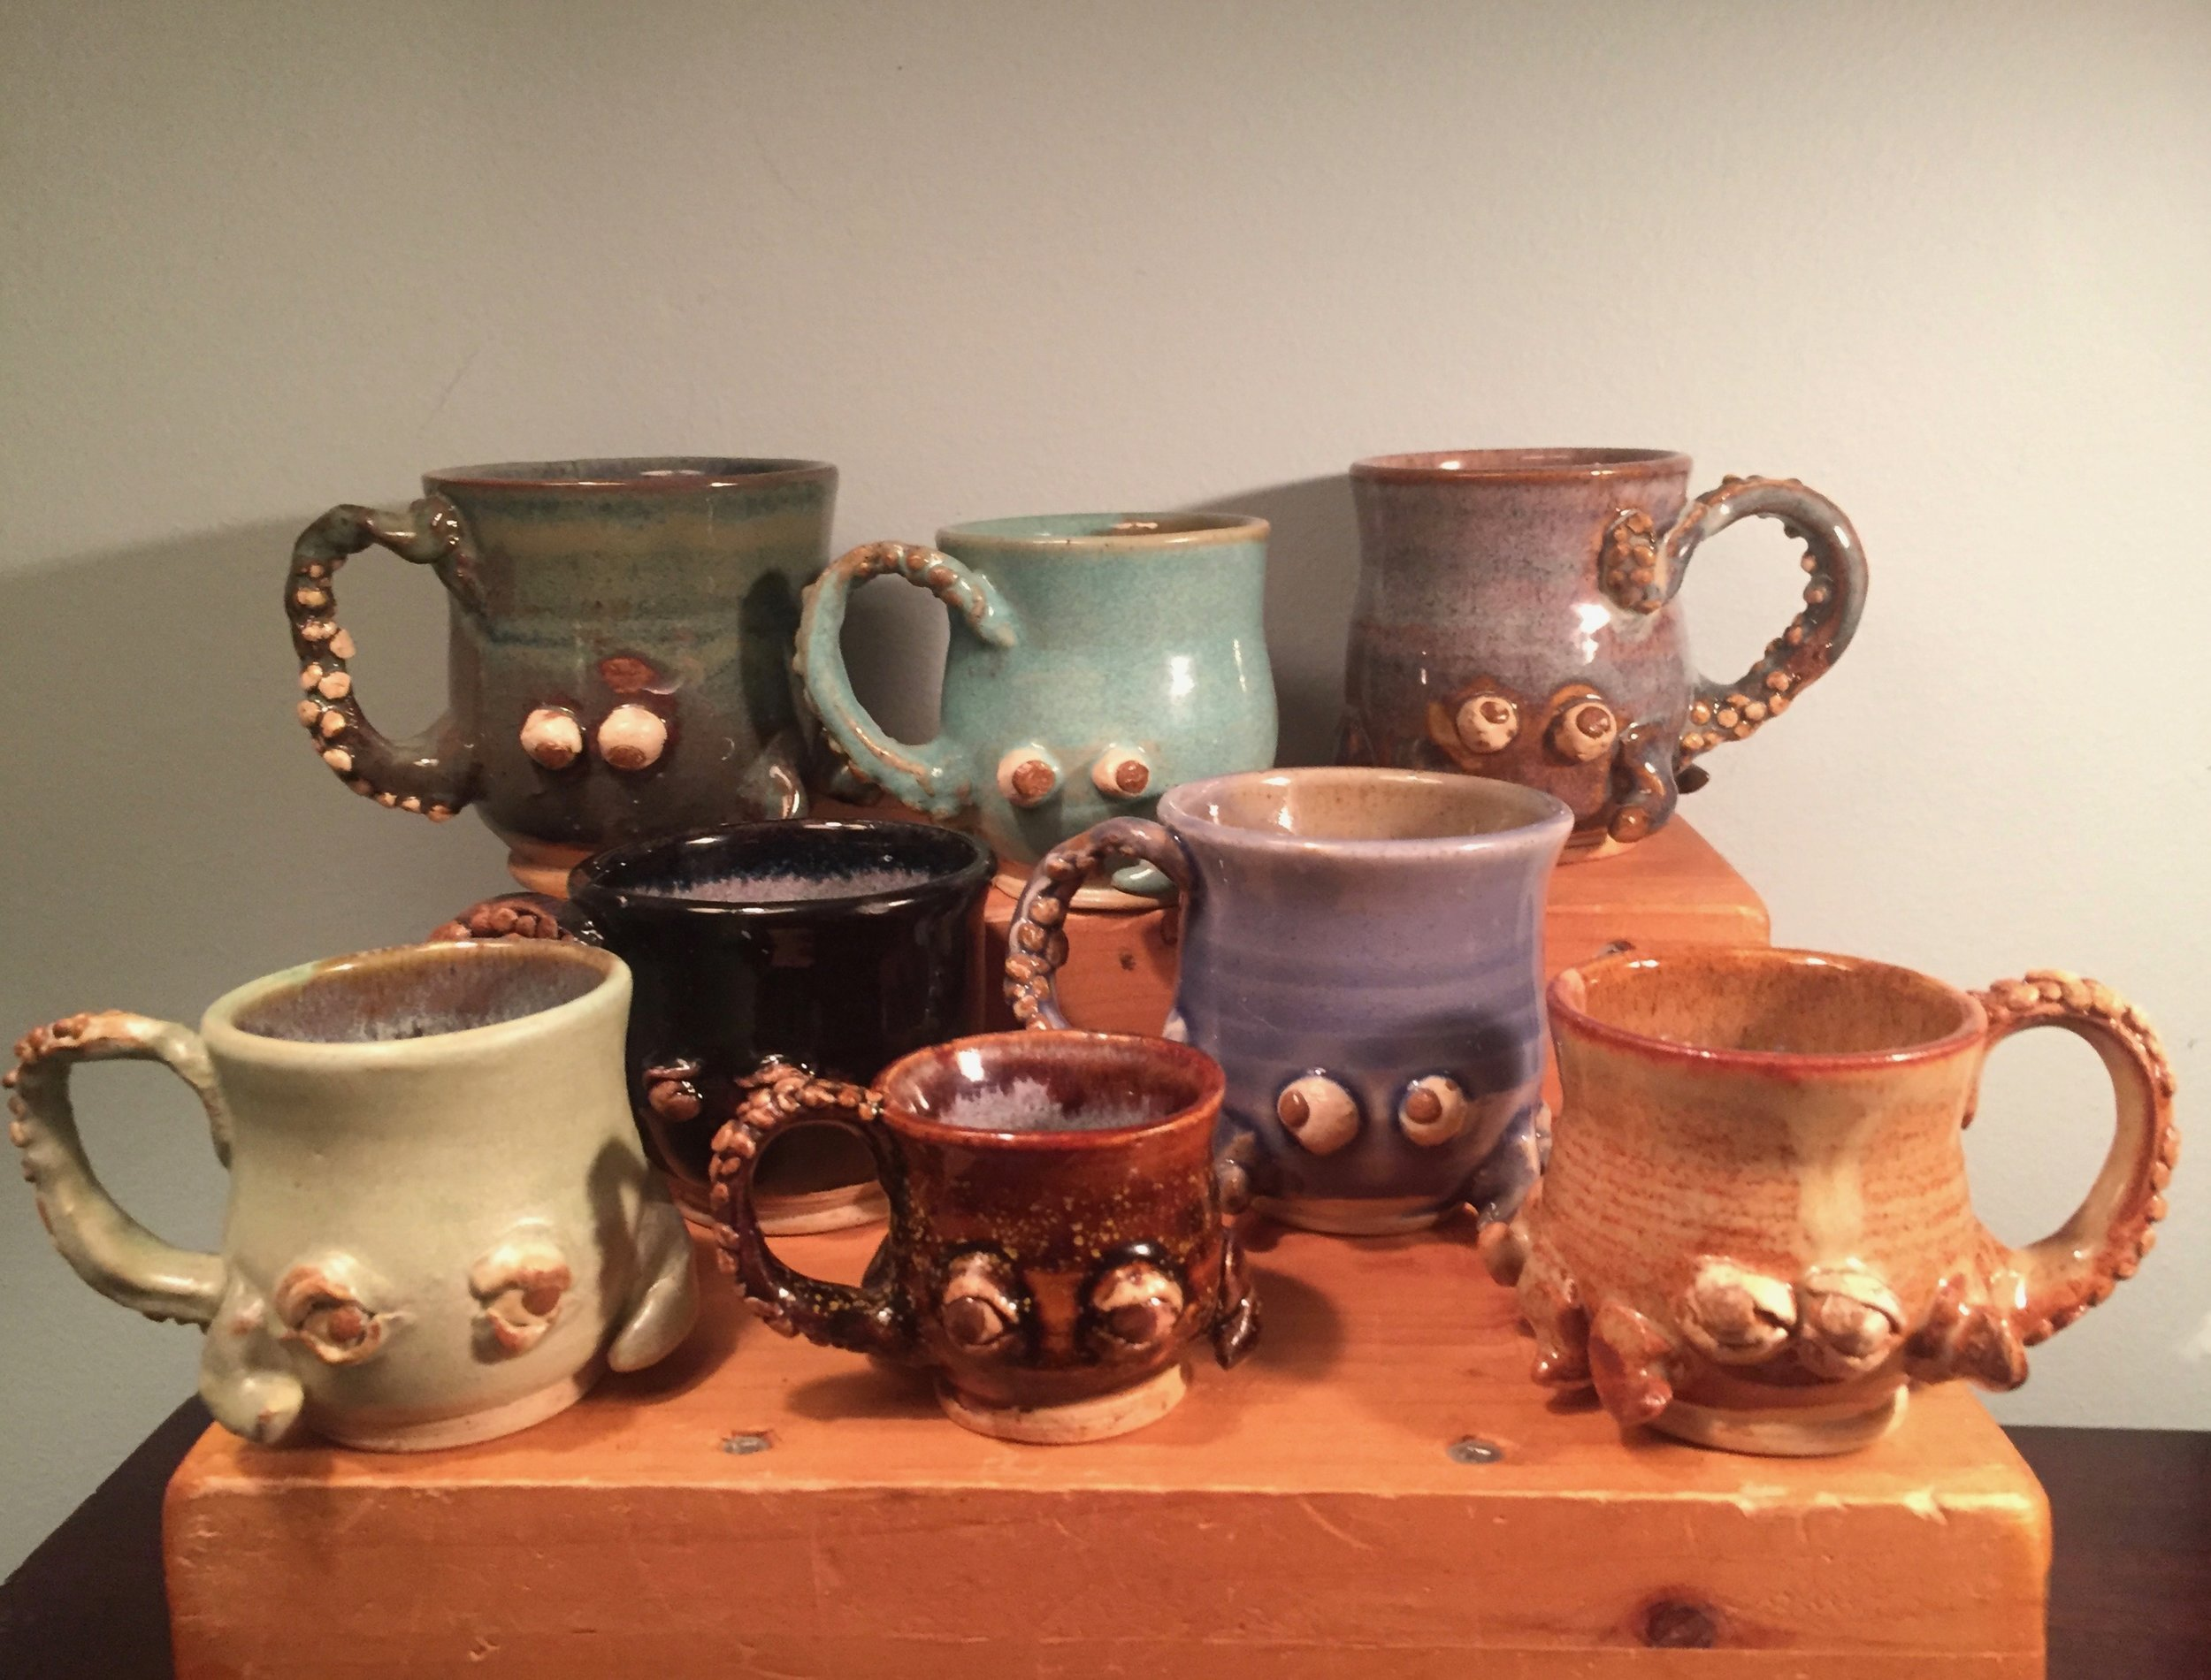 The octopus cup family